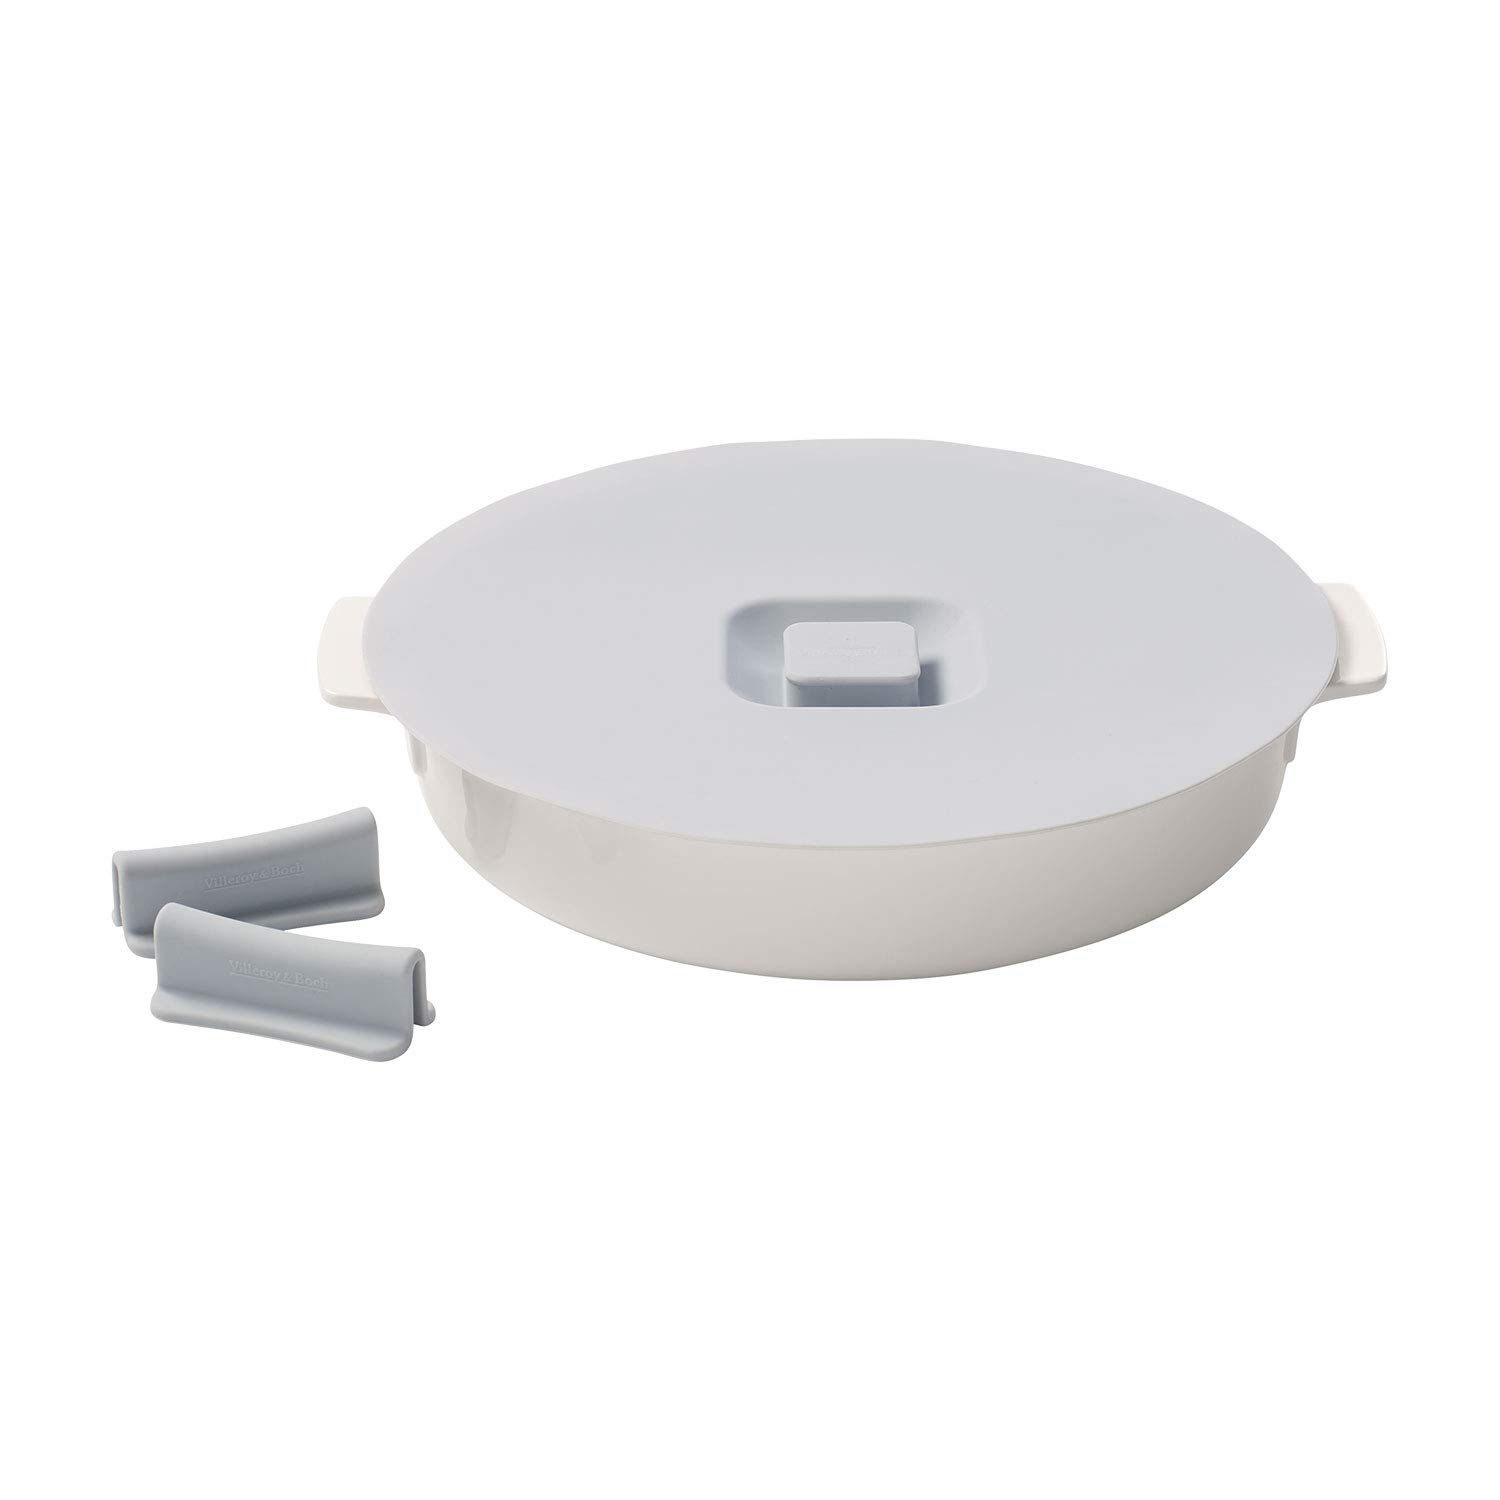 Clever Cooking Round Baking Dish with Lid & Set of Silicone Handles by Villeroy & Boch - Premium Porcelain Baking Dish - Made in Germany - Dishwasher and Microwave Safe - 11 Inches